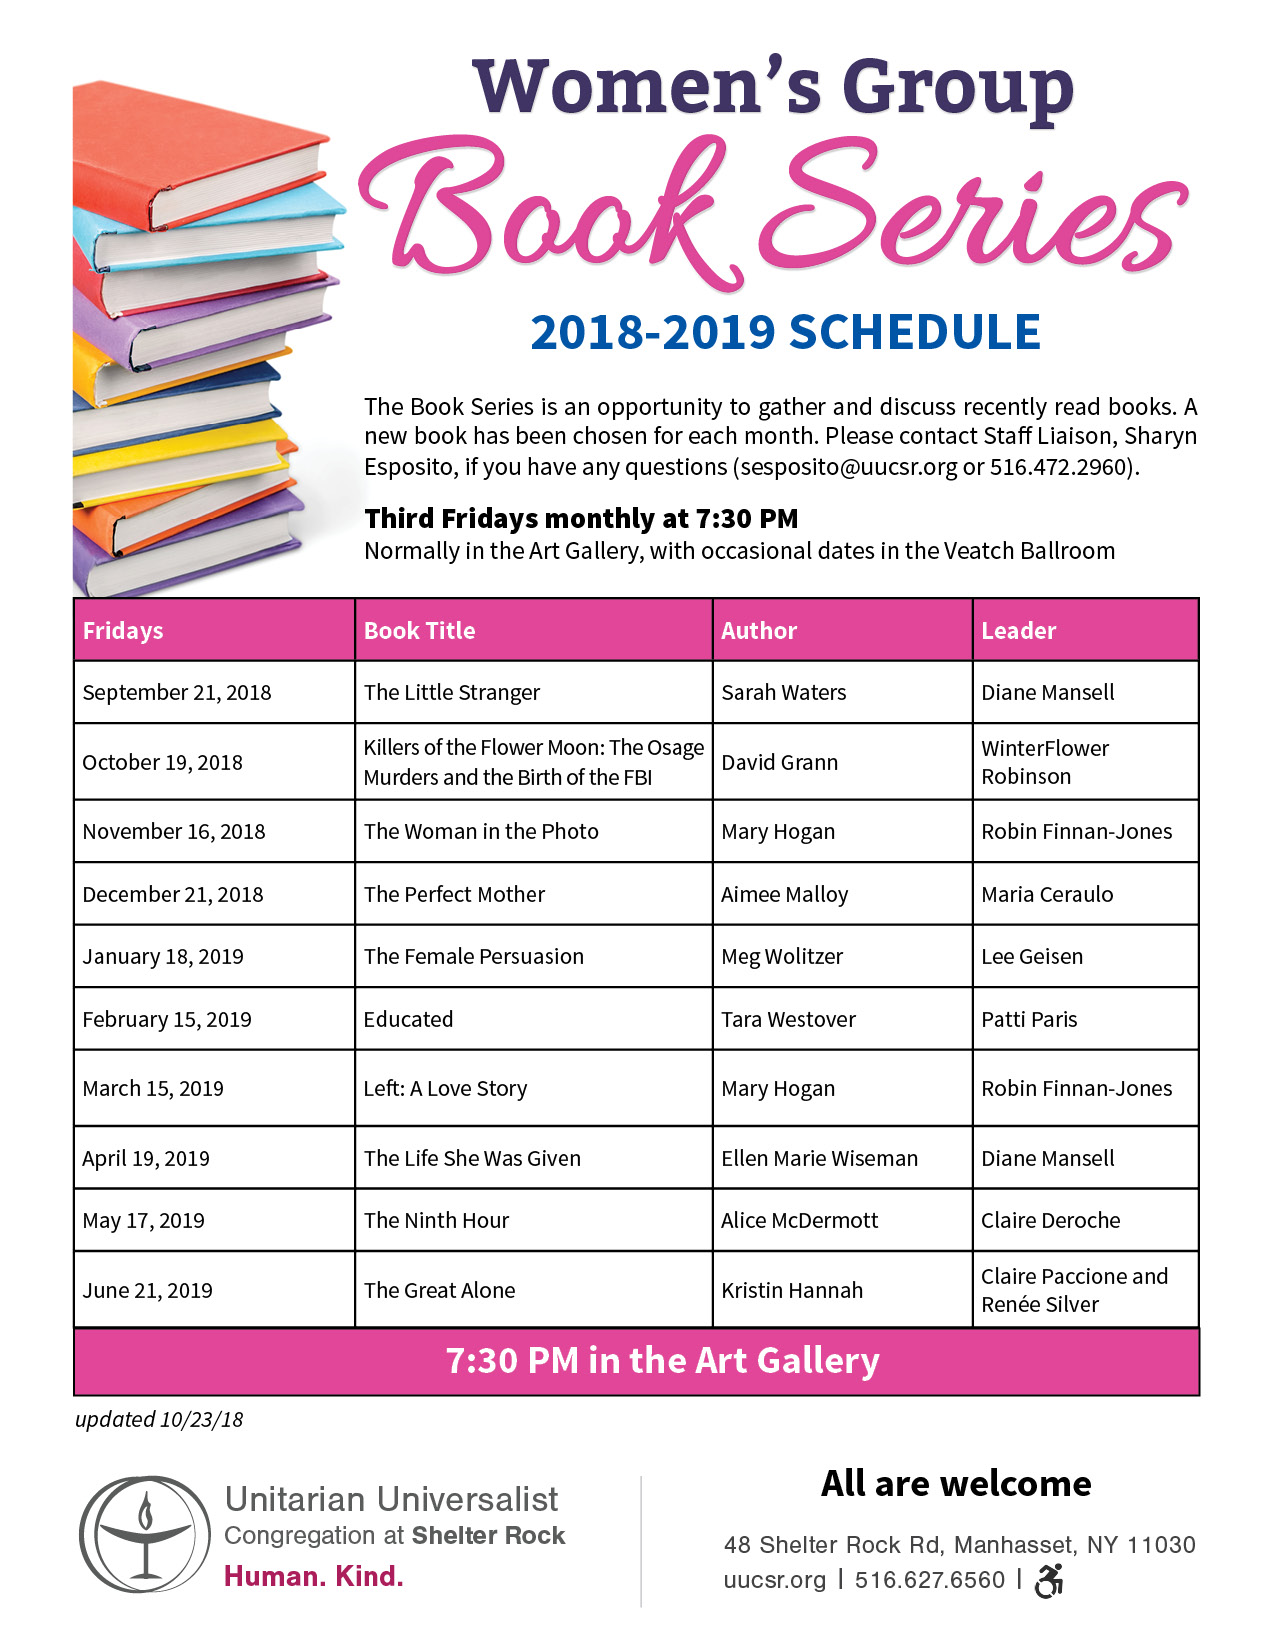 Women's Group Book Series 2018-2019 Schedule